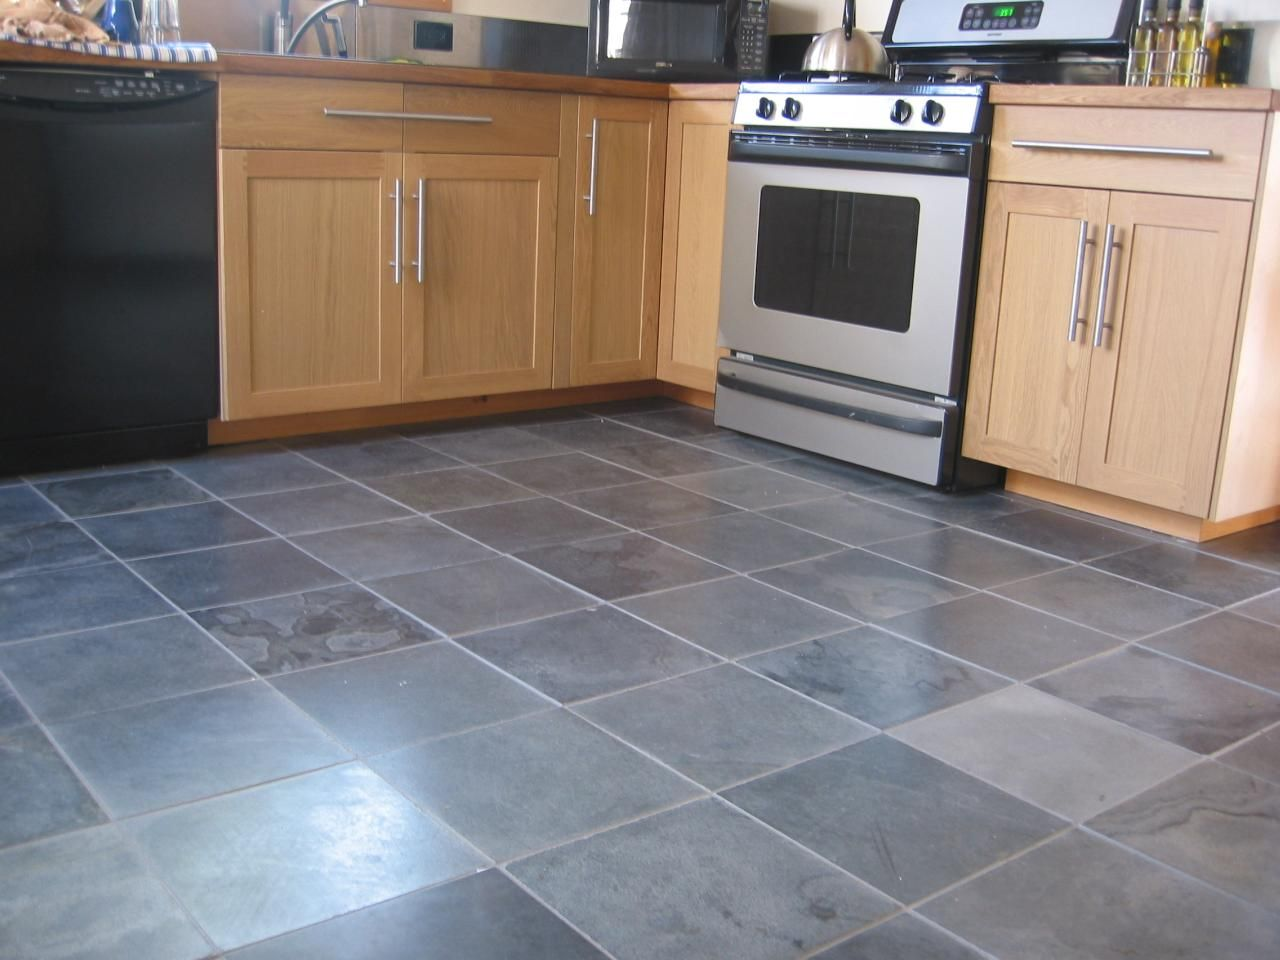 Kitchen Flooring Tiles This Gray Tile Flooring Will Be In My Ensuite Bathroom I Cant